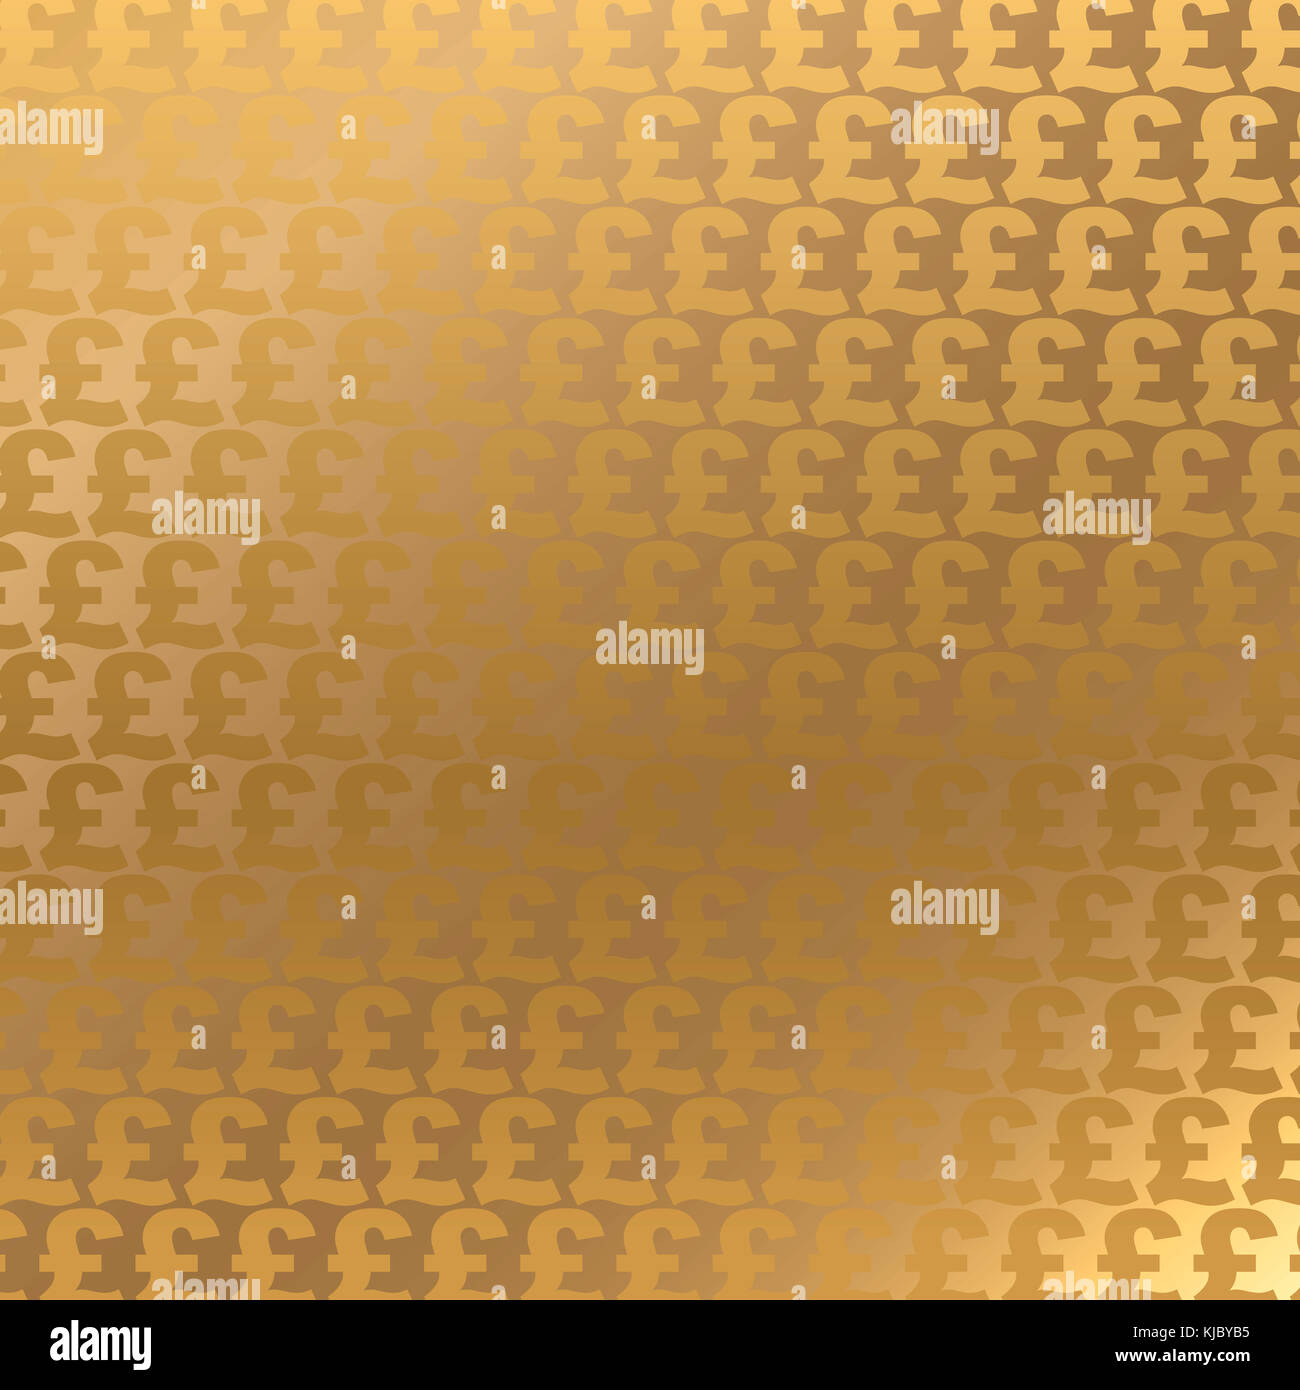 Golden pound sterling currency symbol shiny gold background vector golden pound sterling currency symbol shiny gold background vector illustration biocorpaavc Gallery